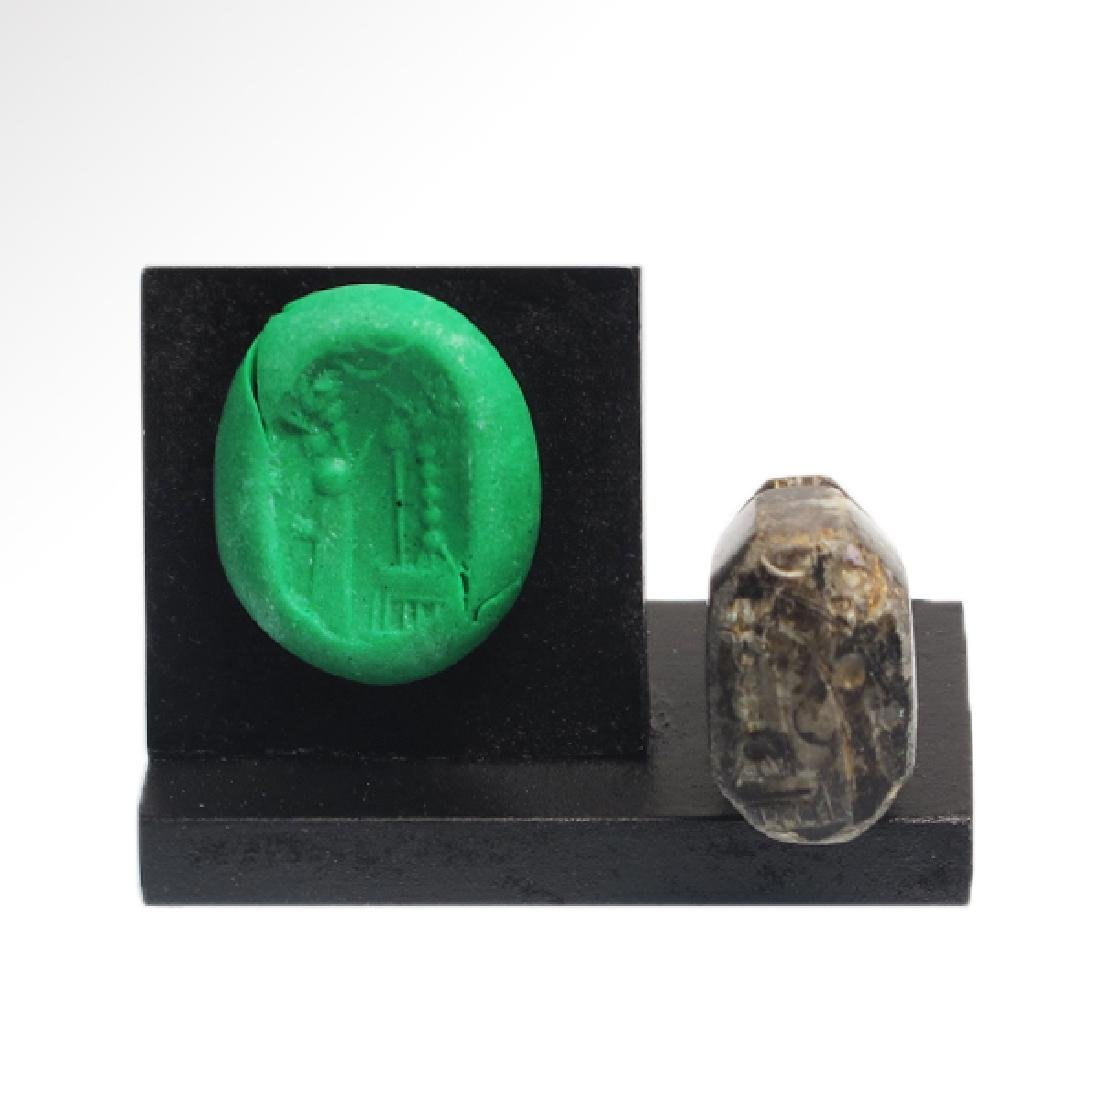 Agate Neo-Babylonian / Neo-Assyrian Stamp Seal, c.